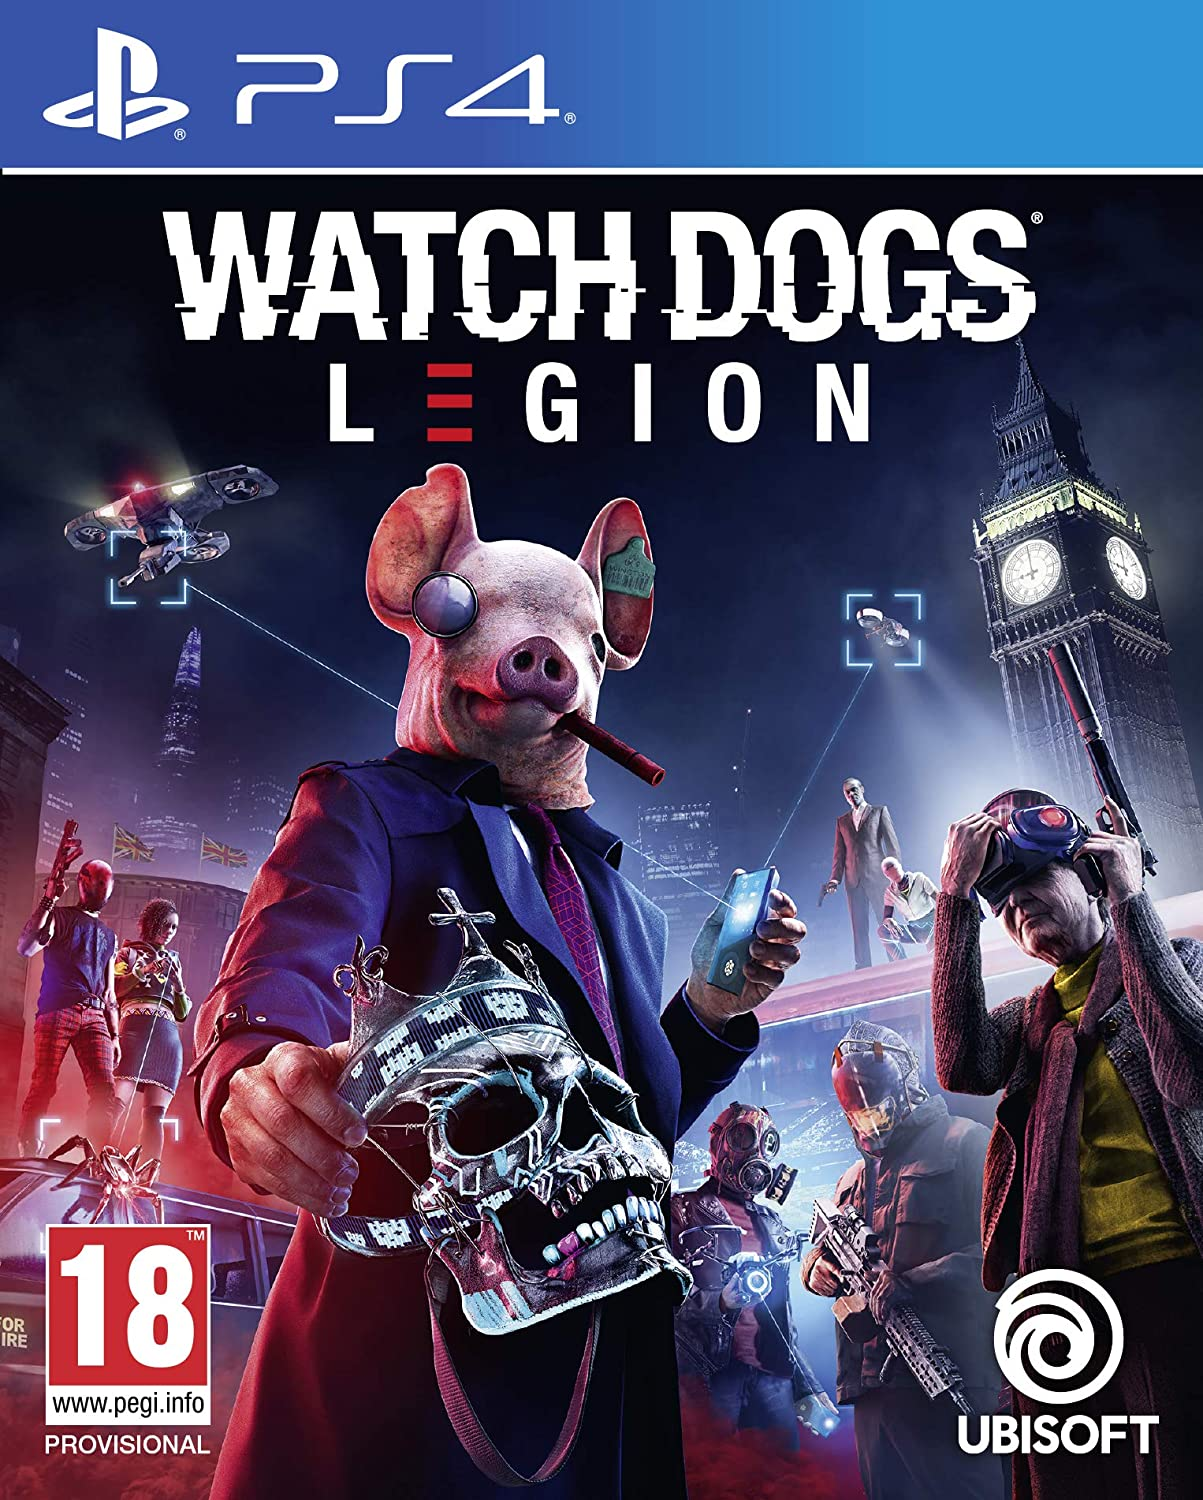 The box art for Watch Dogs Legion